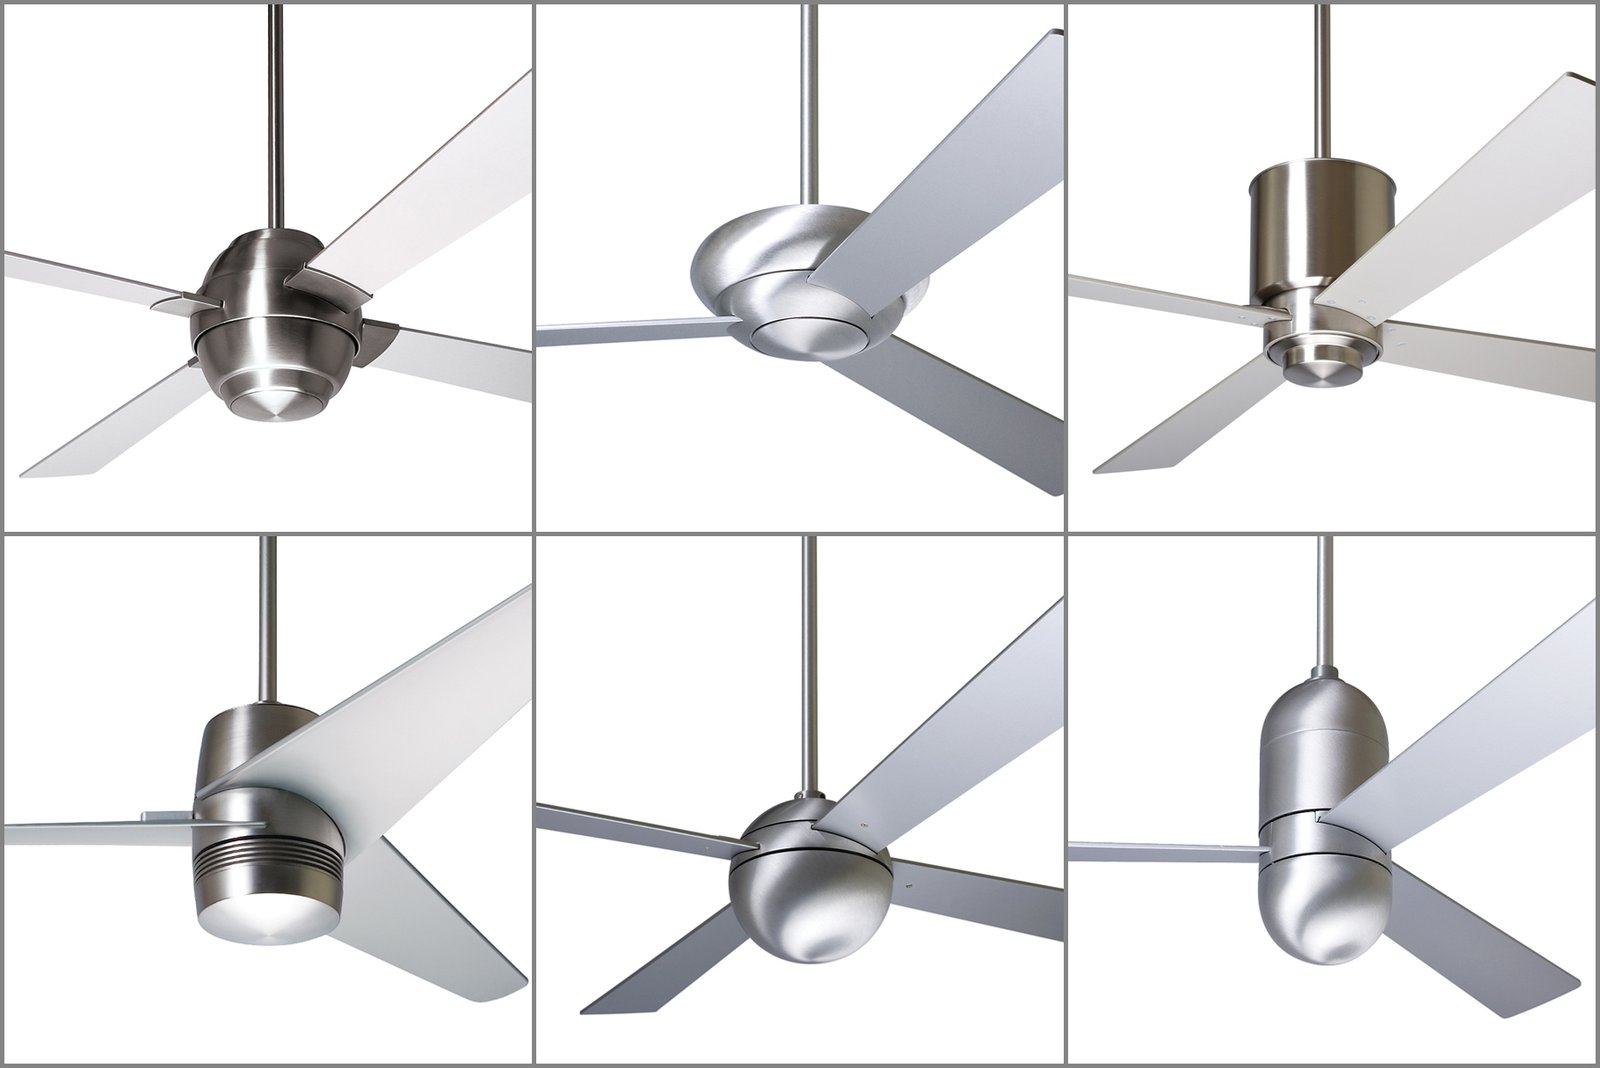 Modern Contemporary Ceiling Fans Taking Flight A Dose Of Brazilian Design Lifts The Ceiling Fan To